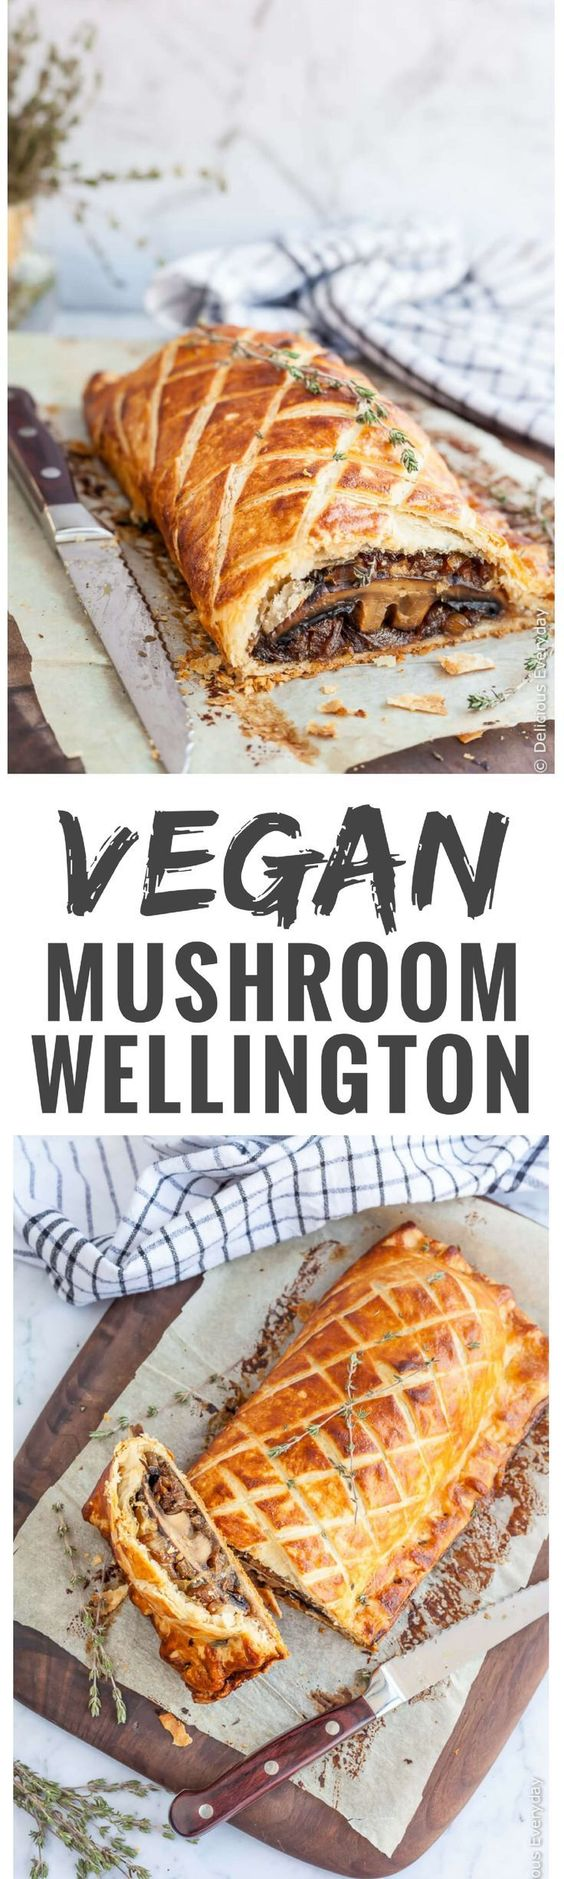 Flaky, Golden and Delicious this Vegan Mushroom Wellington is sure to ...